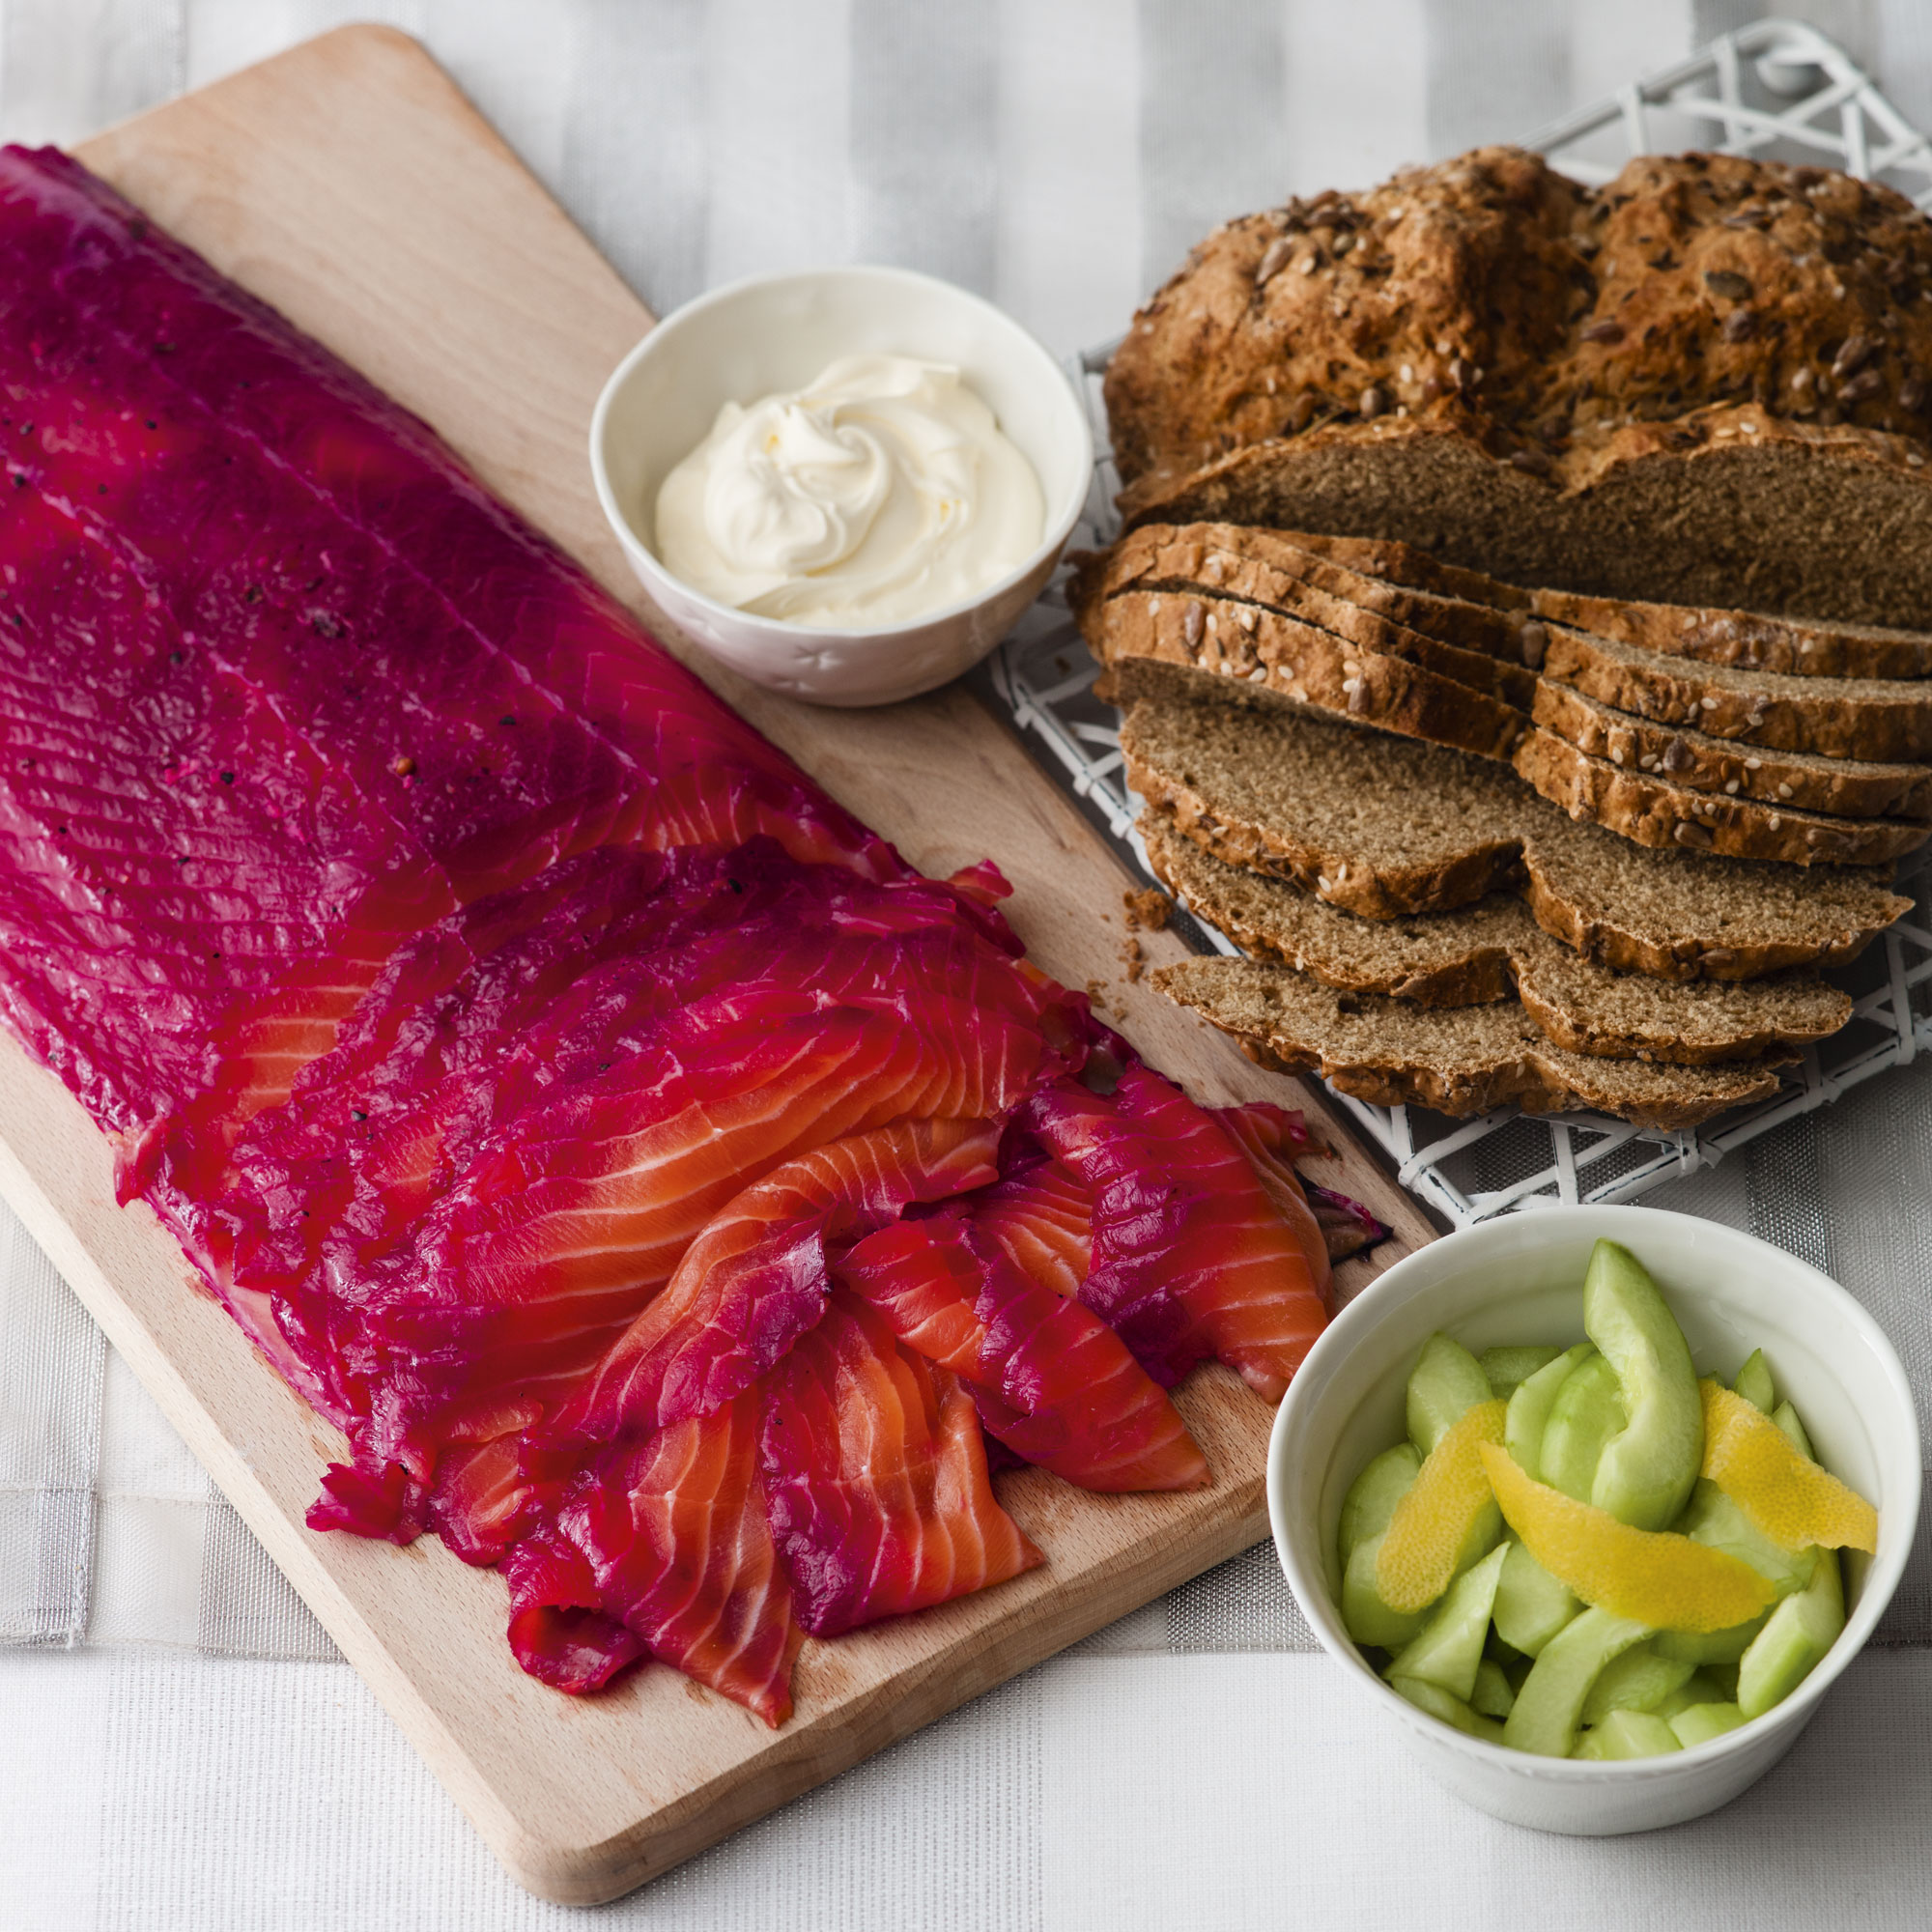 Beetroot And Gin Cured Salmon Lunch Recipes Woman Home